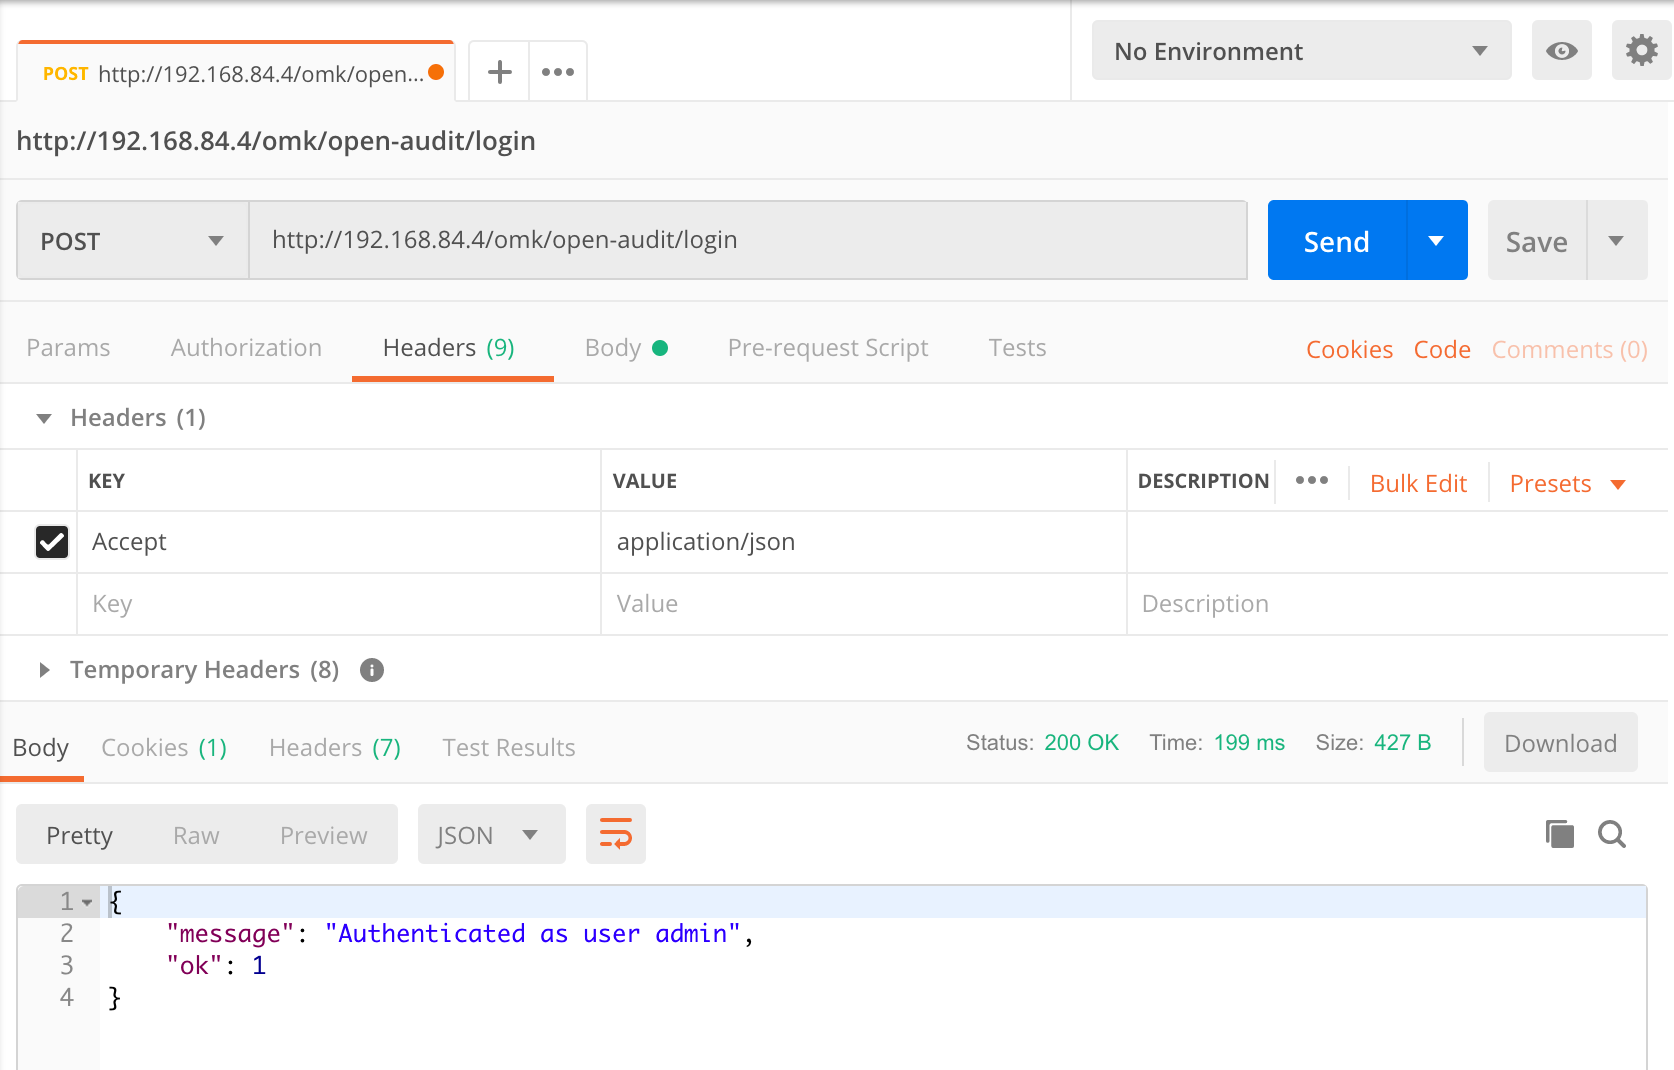 Using Postman to query the Open-AudIT API - Open-AudIT